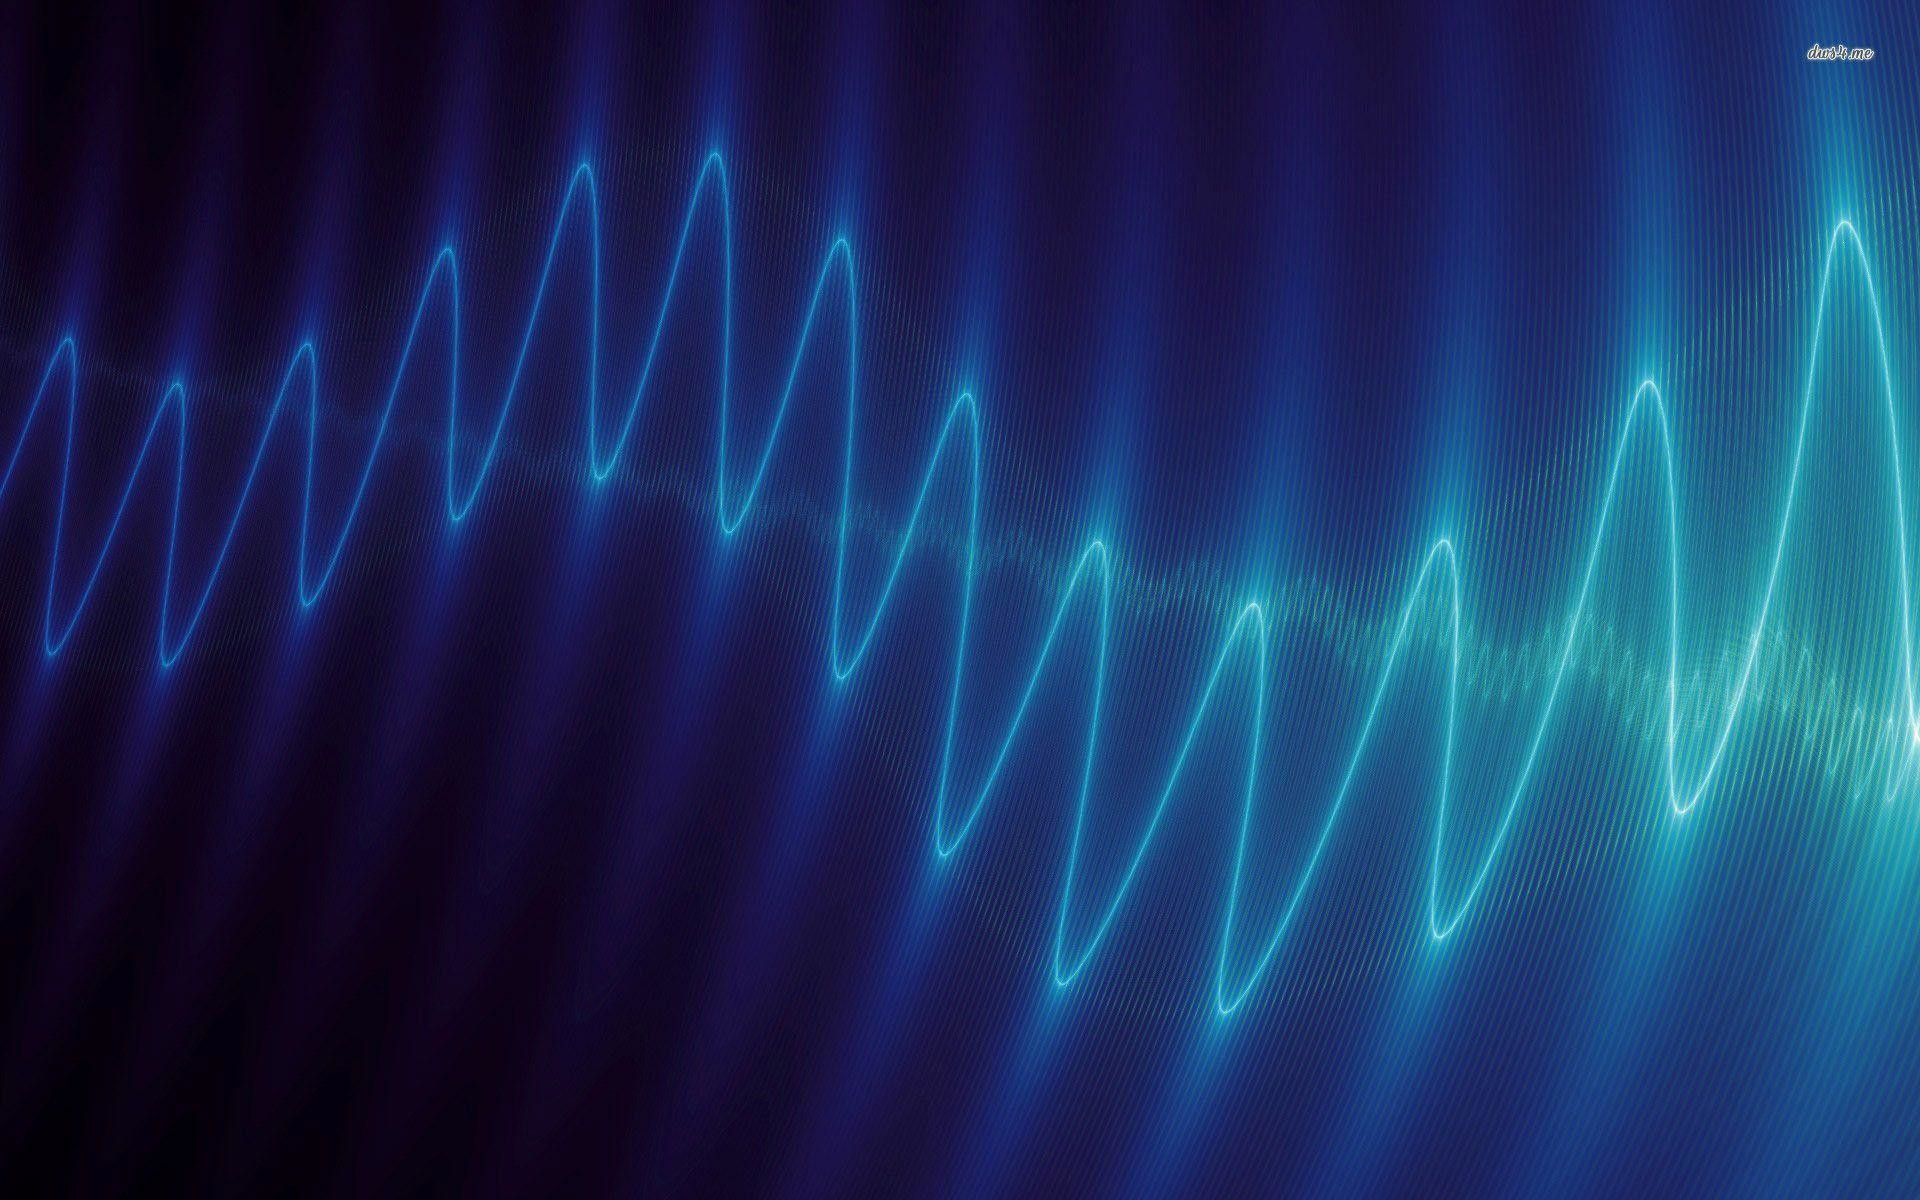 Sound Wave Wallpapers – Full HD wallpaper search